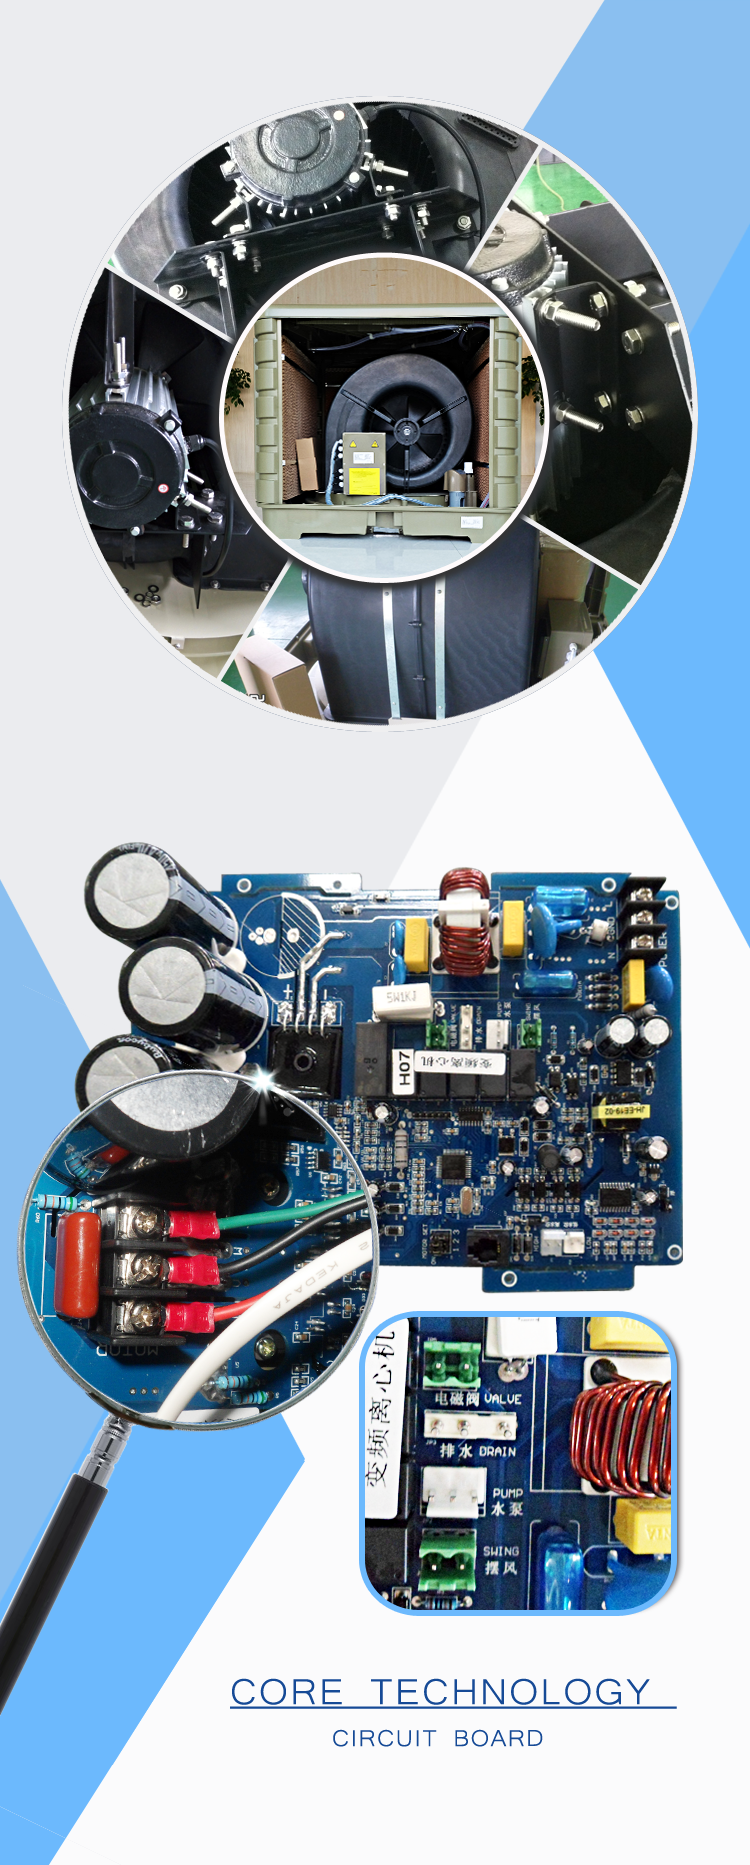 Cheap And Low Price Wall Bracket For Air Conditioner Outdoor Unit Ac Circuit Board Prices Evaporative Cooling System